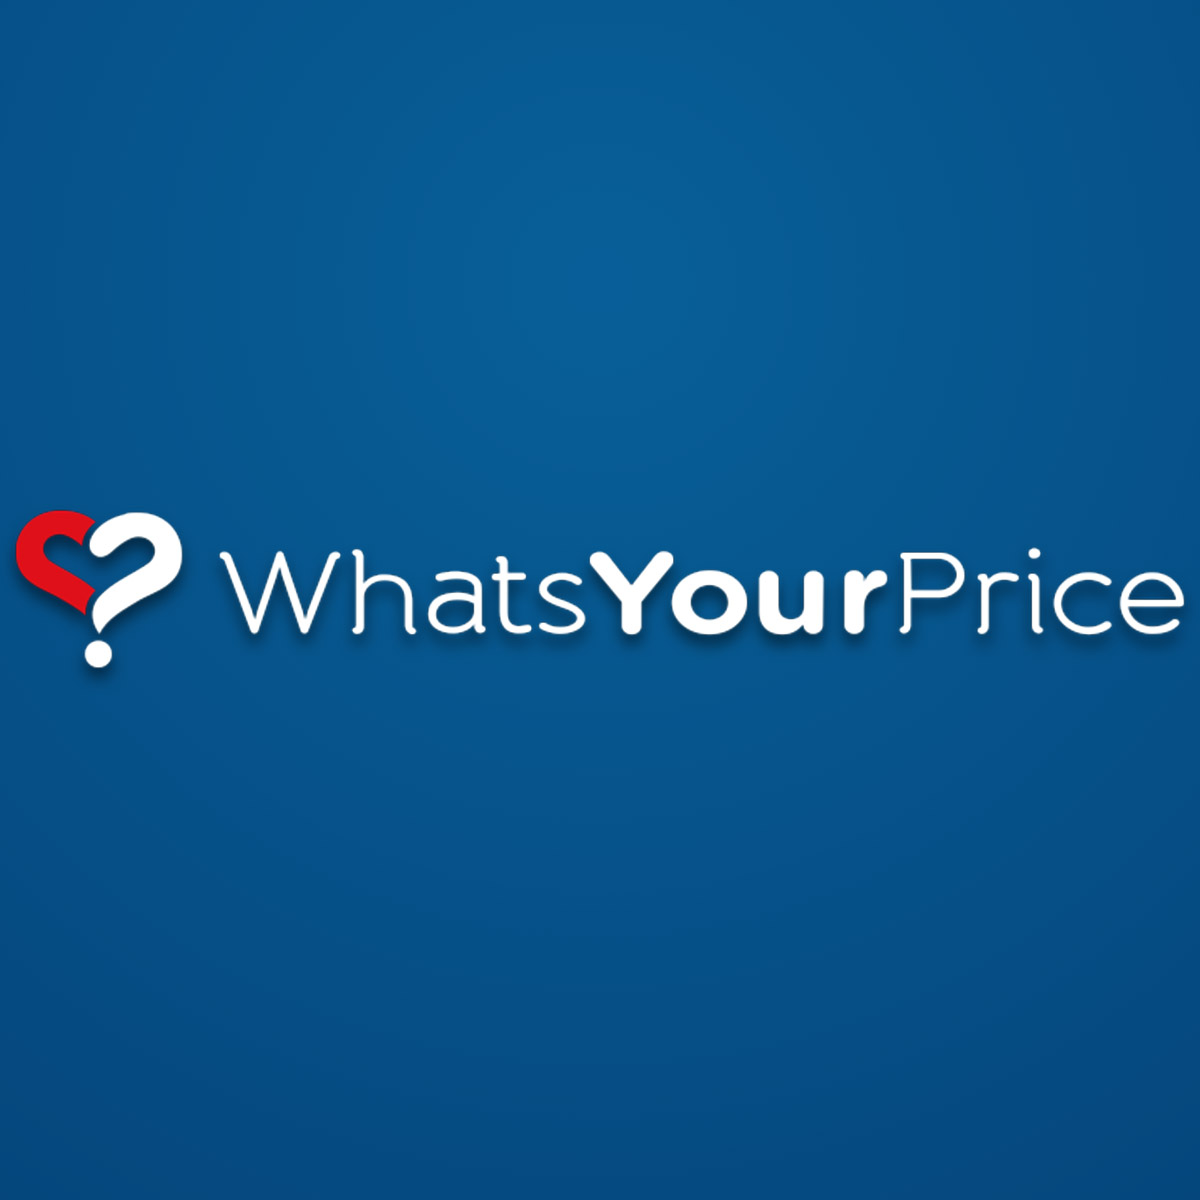 What's Your Price Review